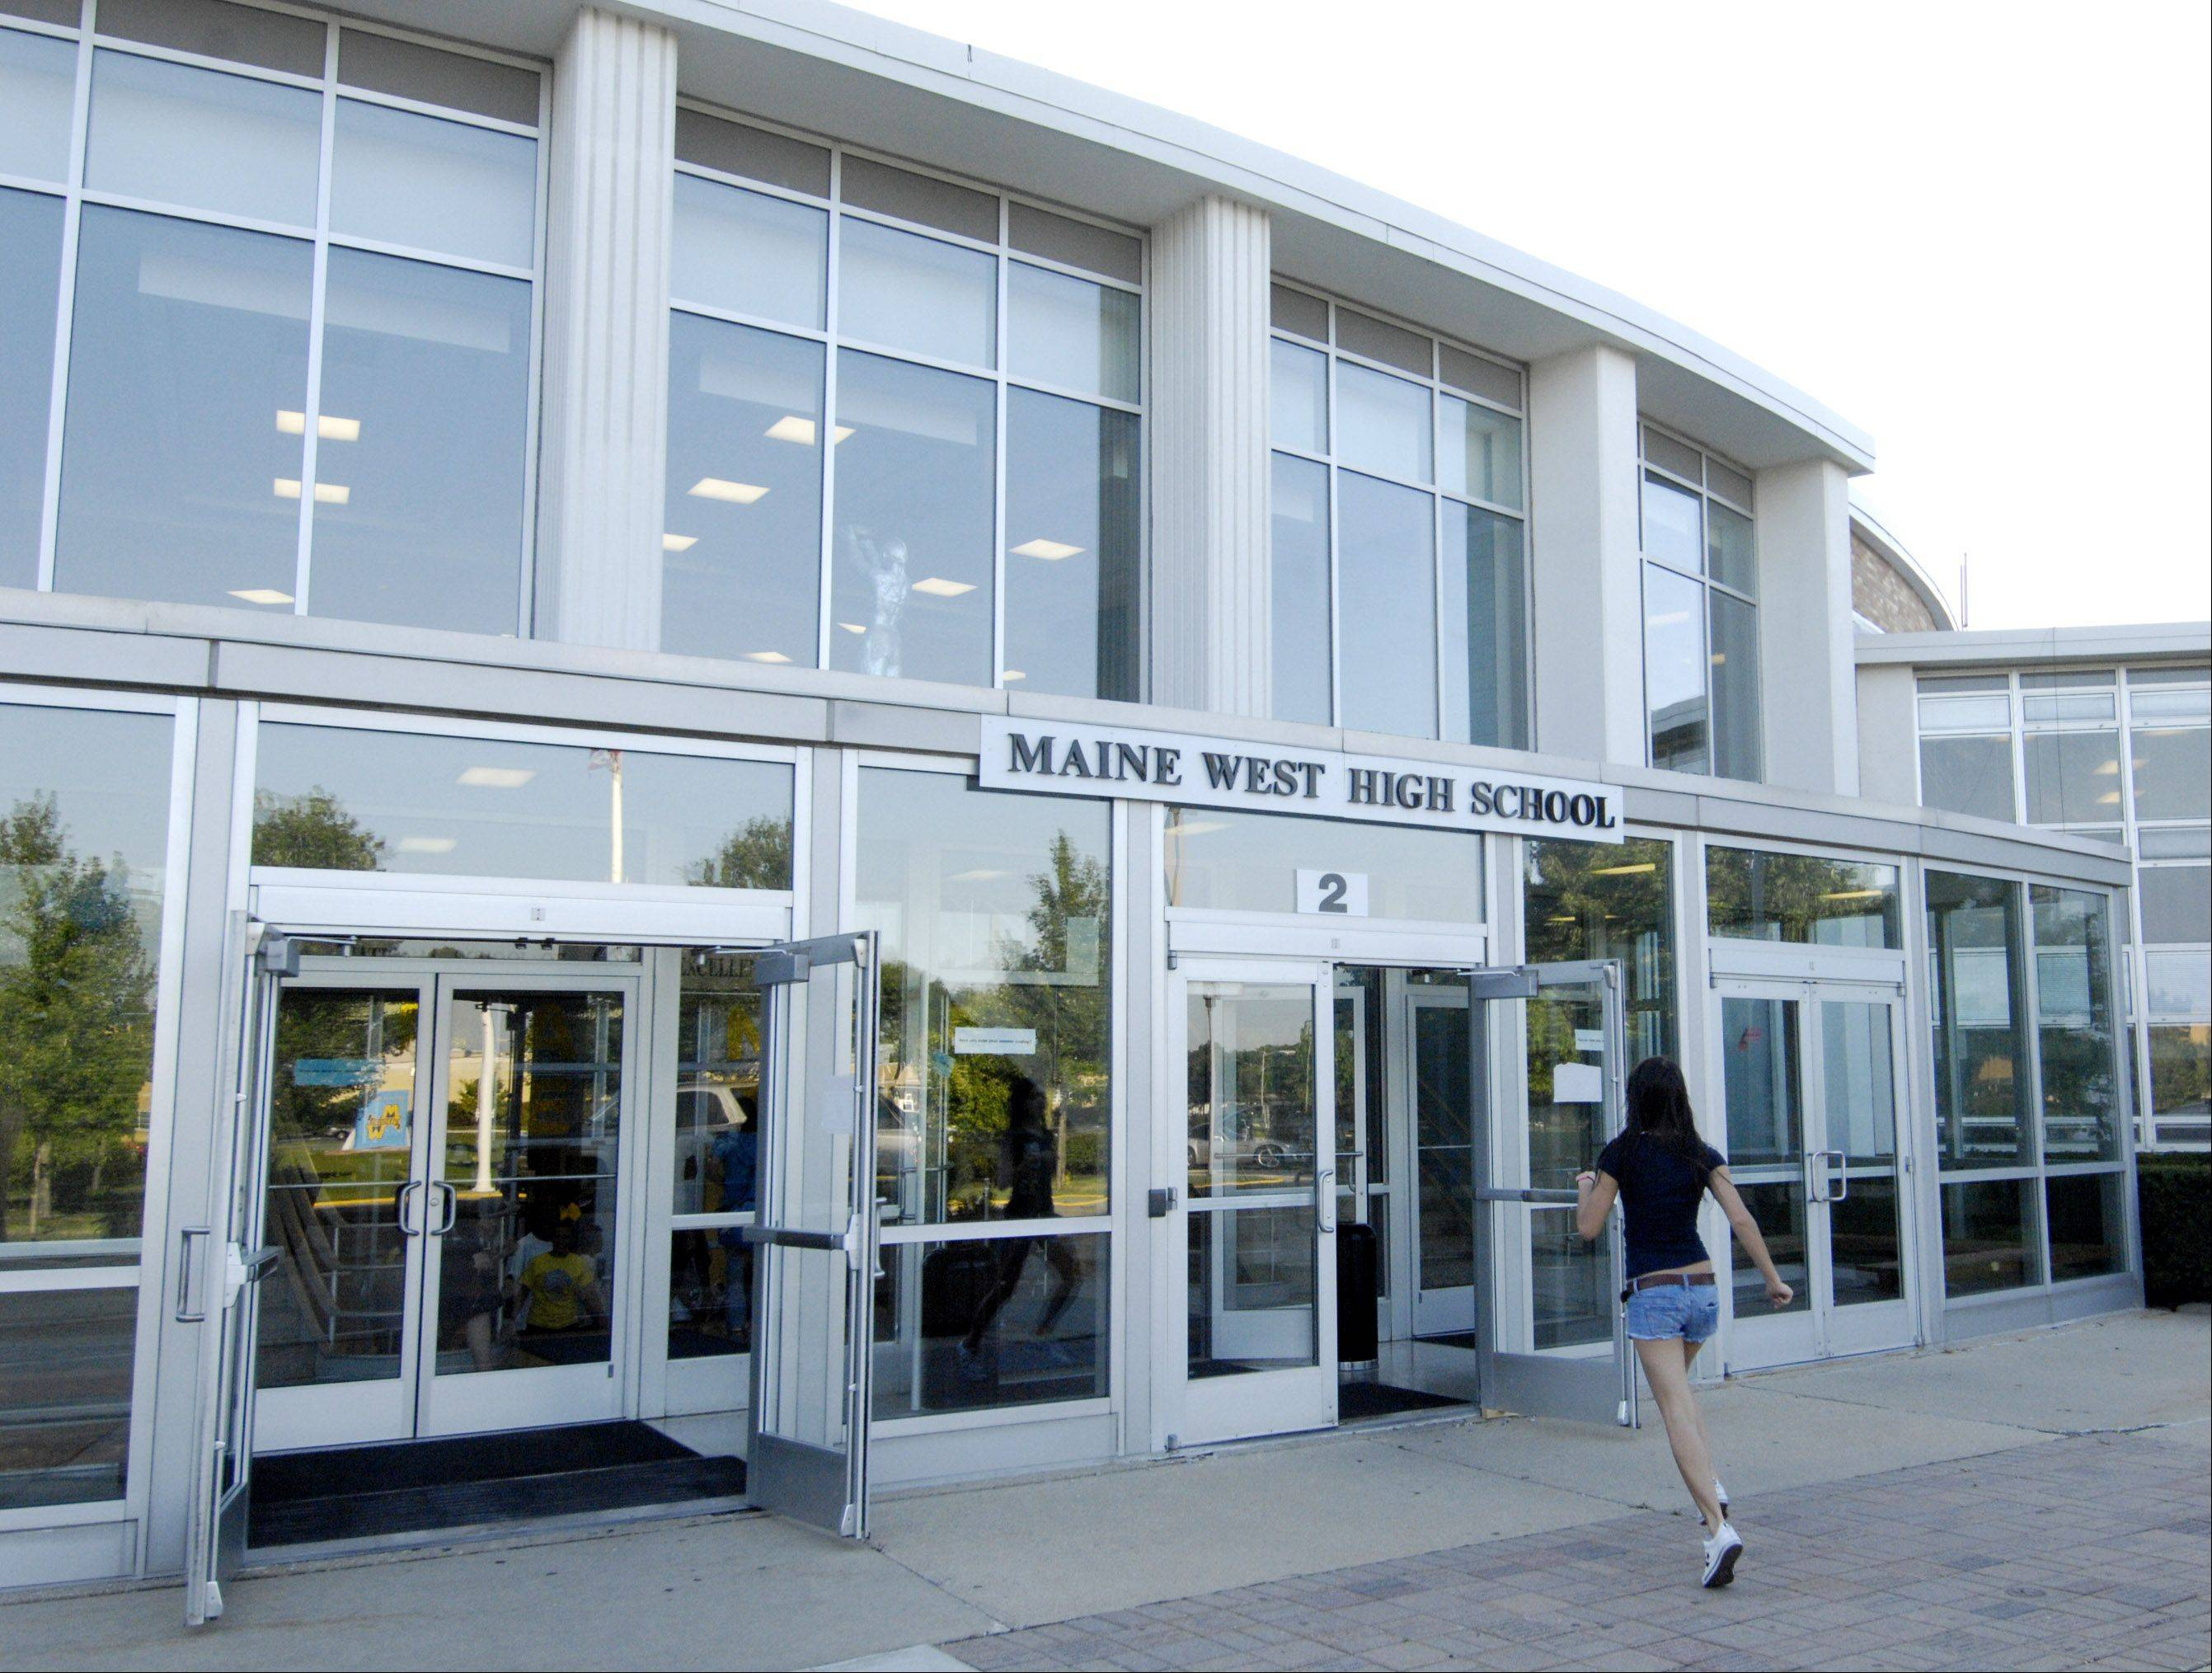 Maine Township High School District 207 is acknowledging a 2008 hazing incident involving the freshman baseball team coached by the same man accused in a 2012 lawsuit alleging varsity soccer team hazing.